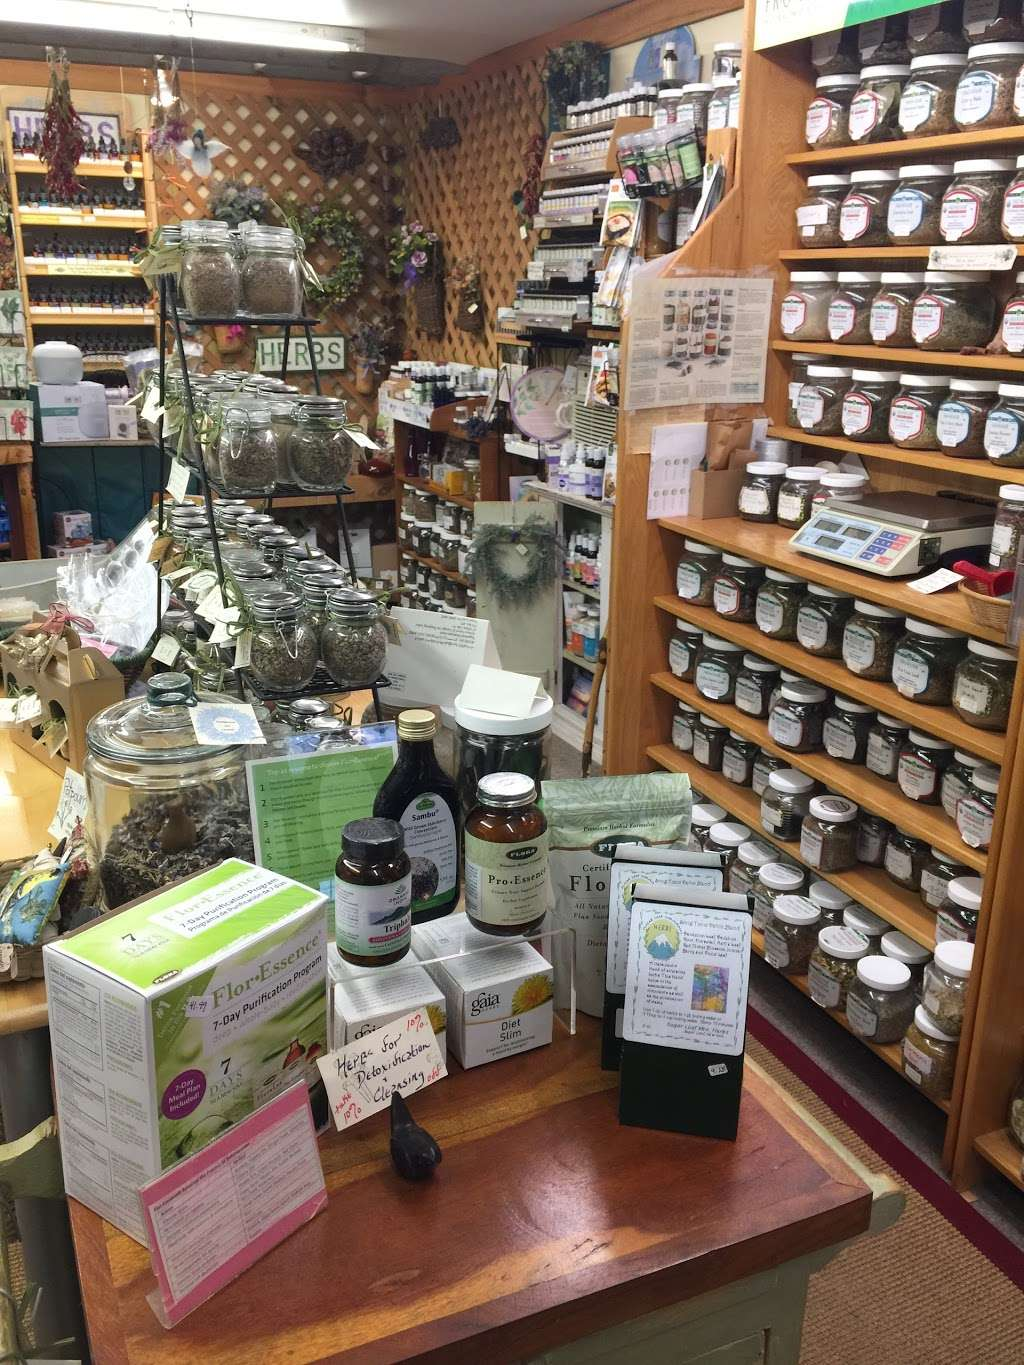 Sugar Loaf Mountain Herbs - store  | Photo 1 of 4 | Address: 1361 C Kings Highway, Sugar Loaf, NY 10981, USA | Phone: (845) 469-6460